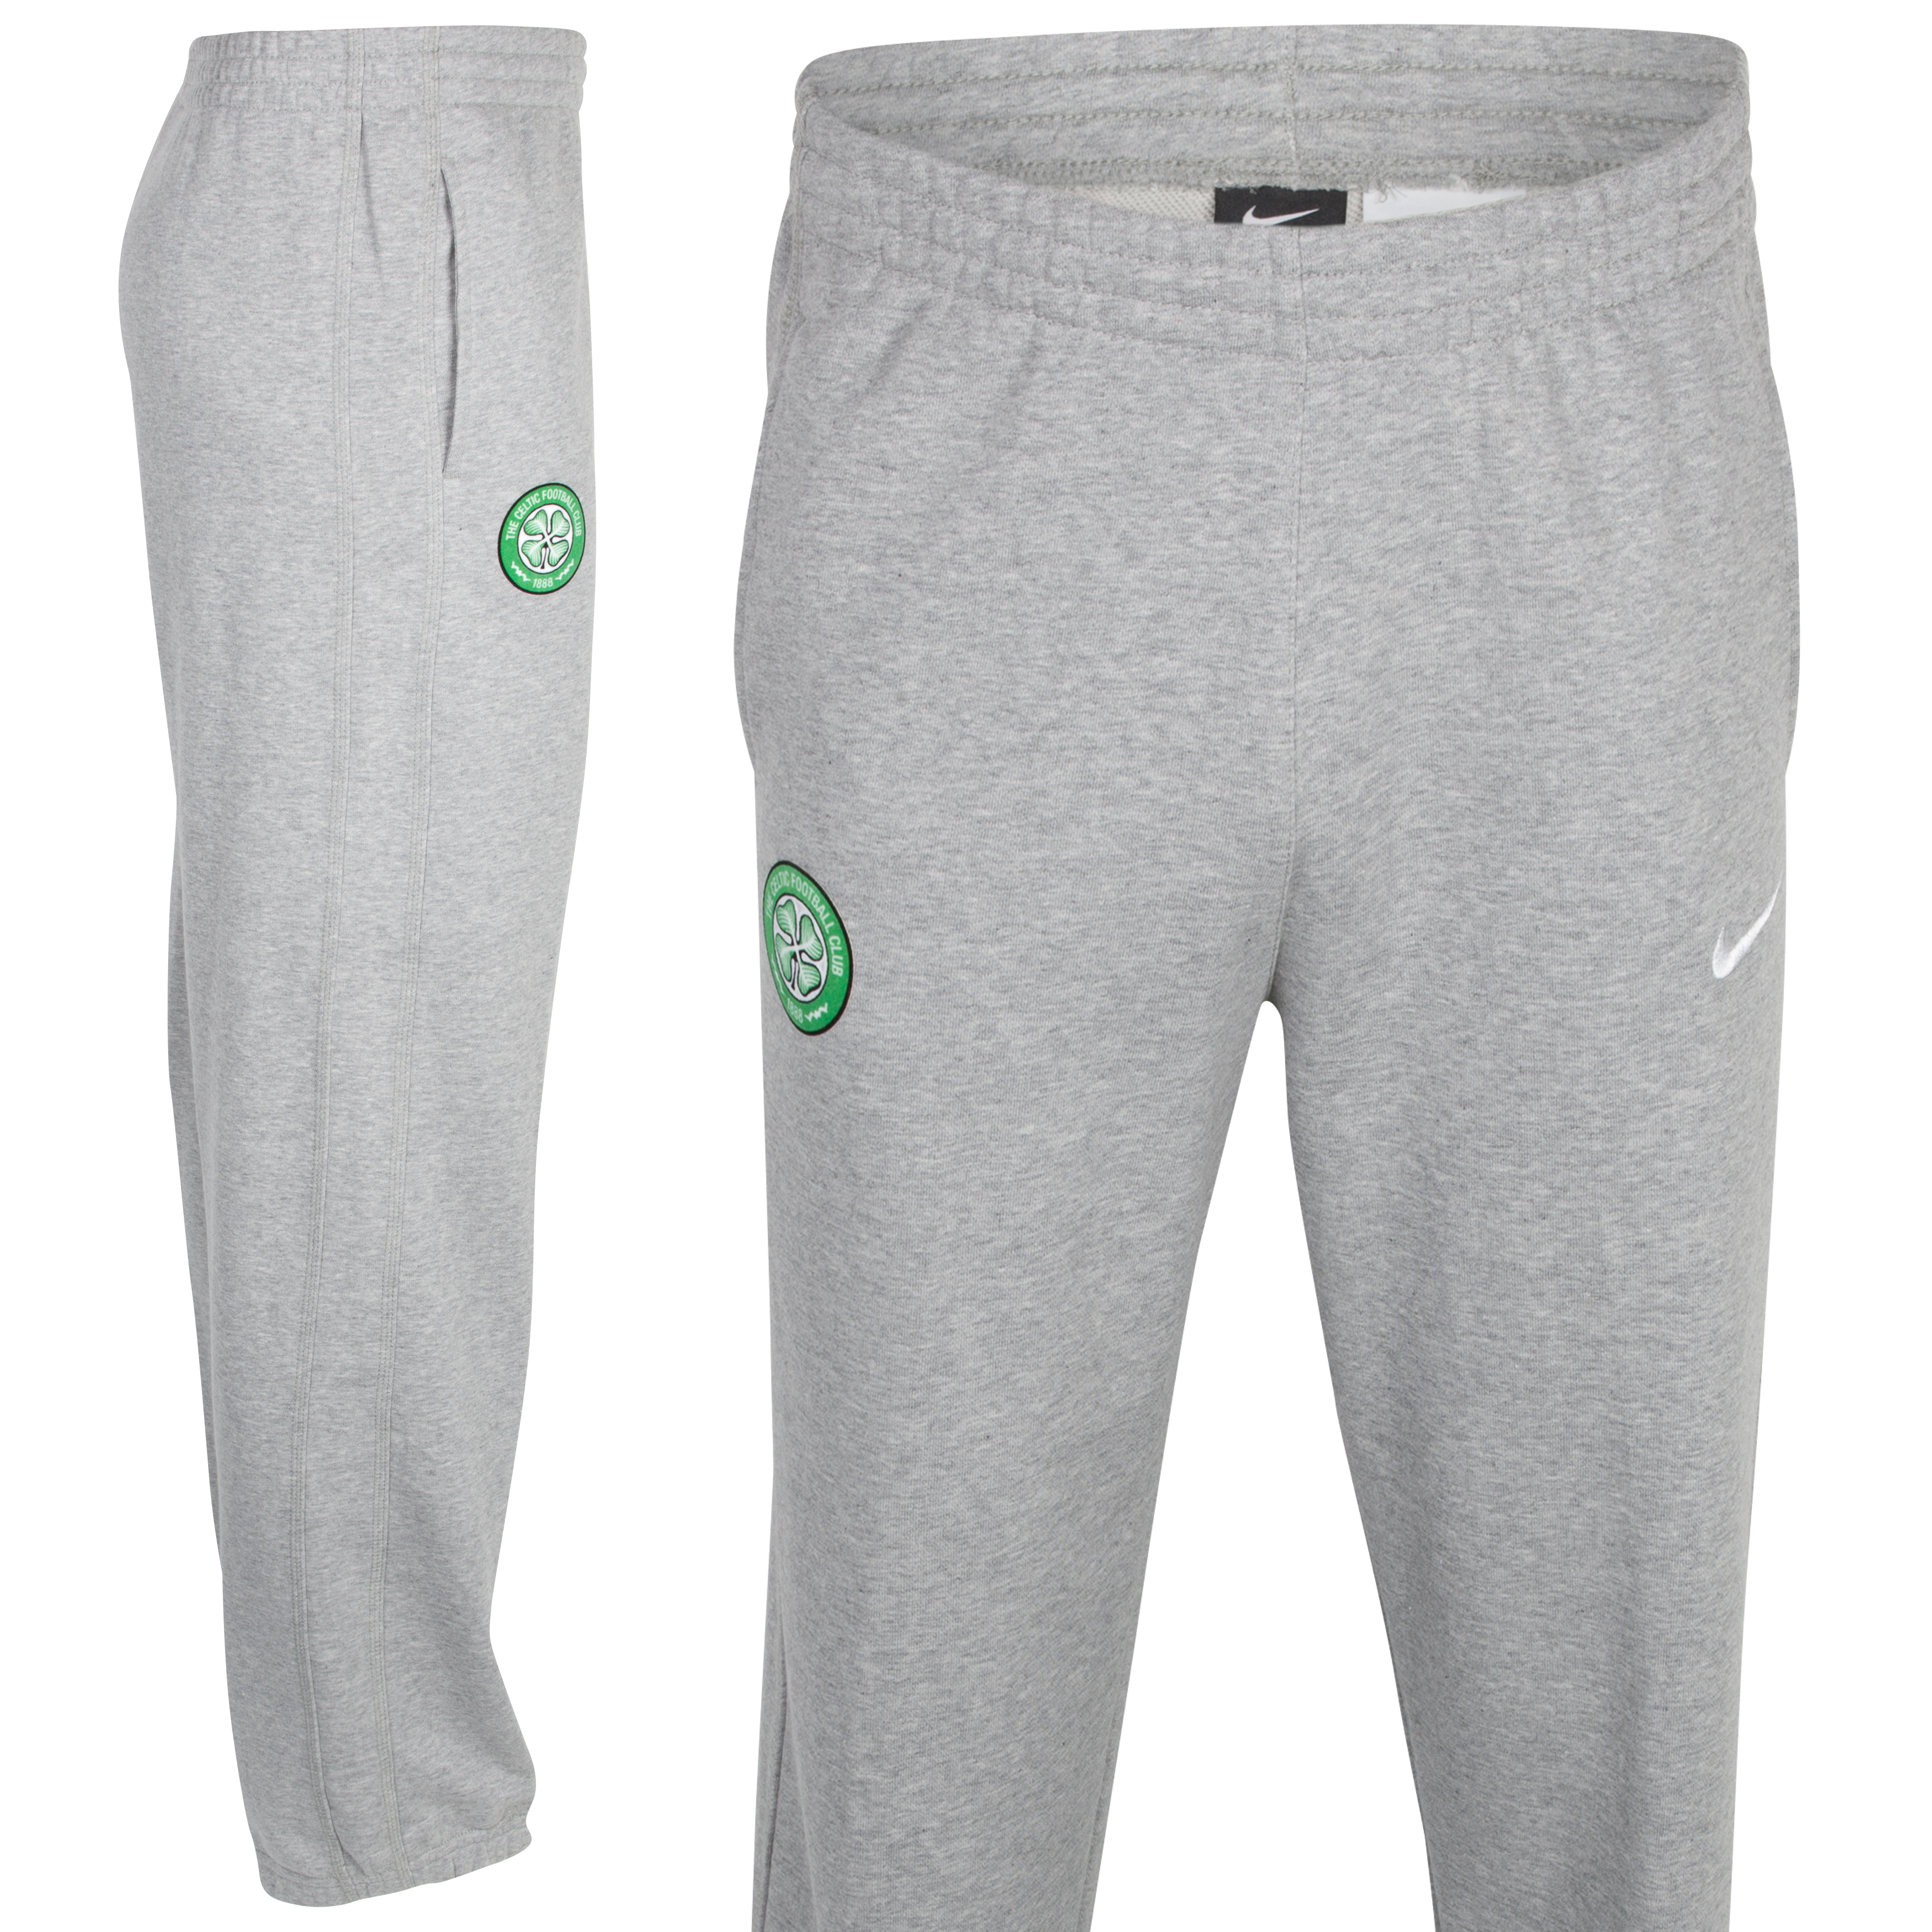 Celtic Score Cuffed Fleece Pant - Dark Grey - Youths